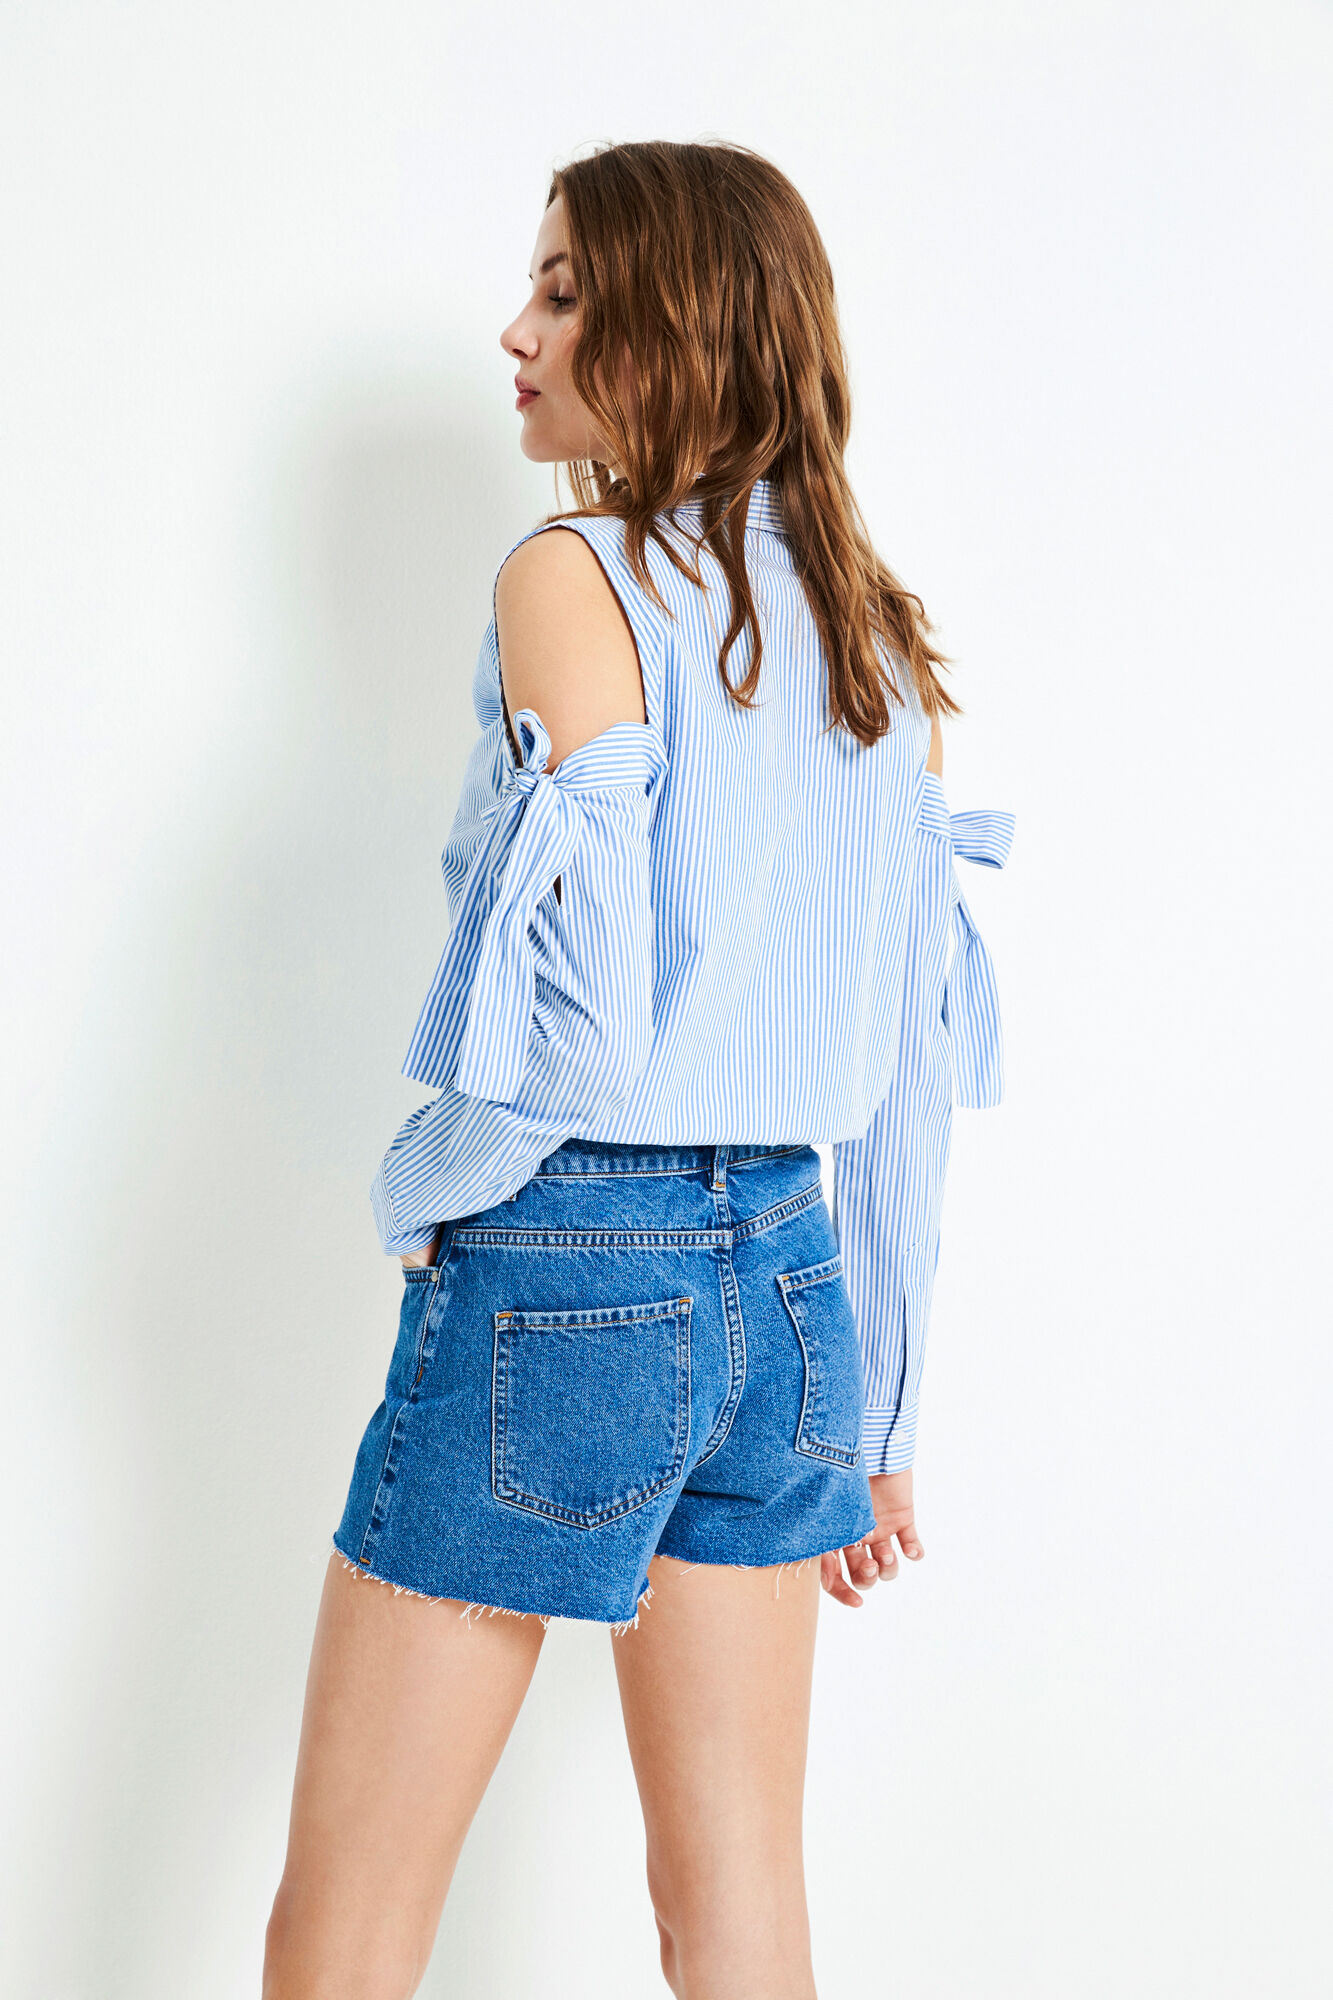 ENBRENDA DENIM SHORTS 6484